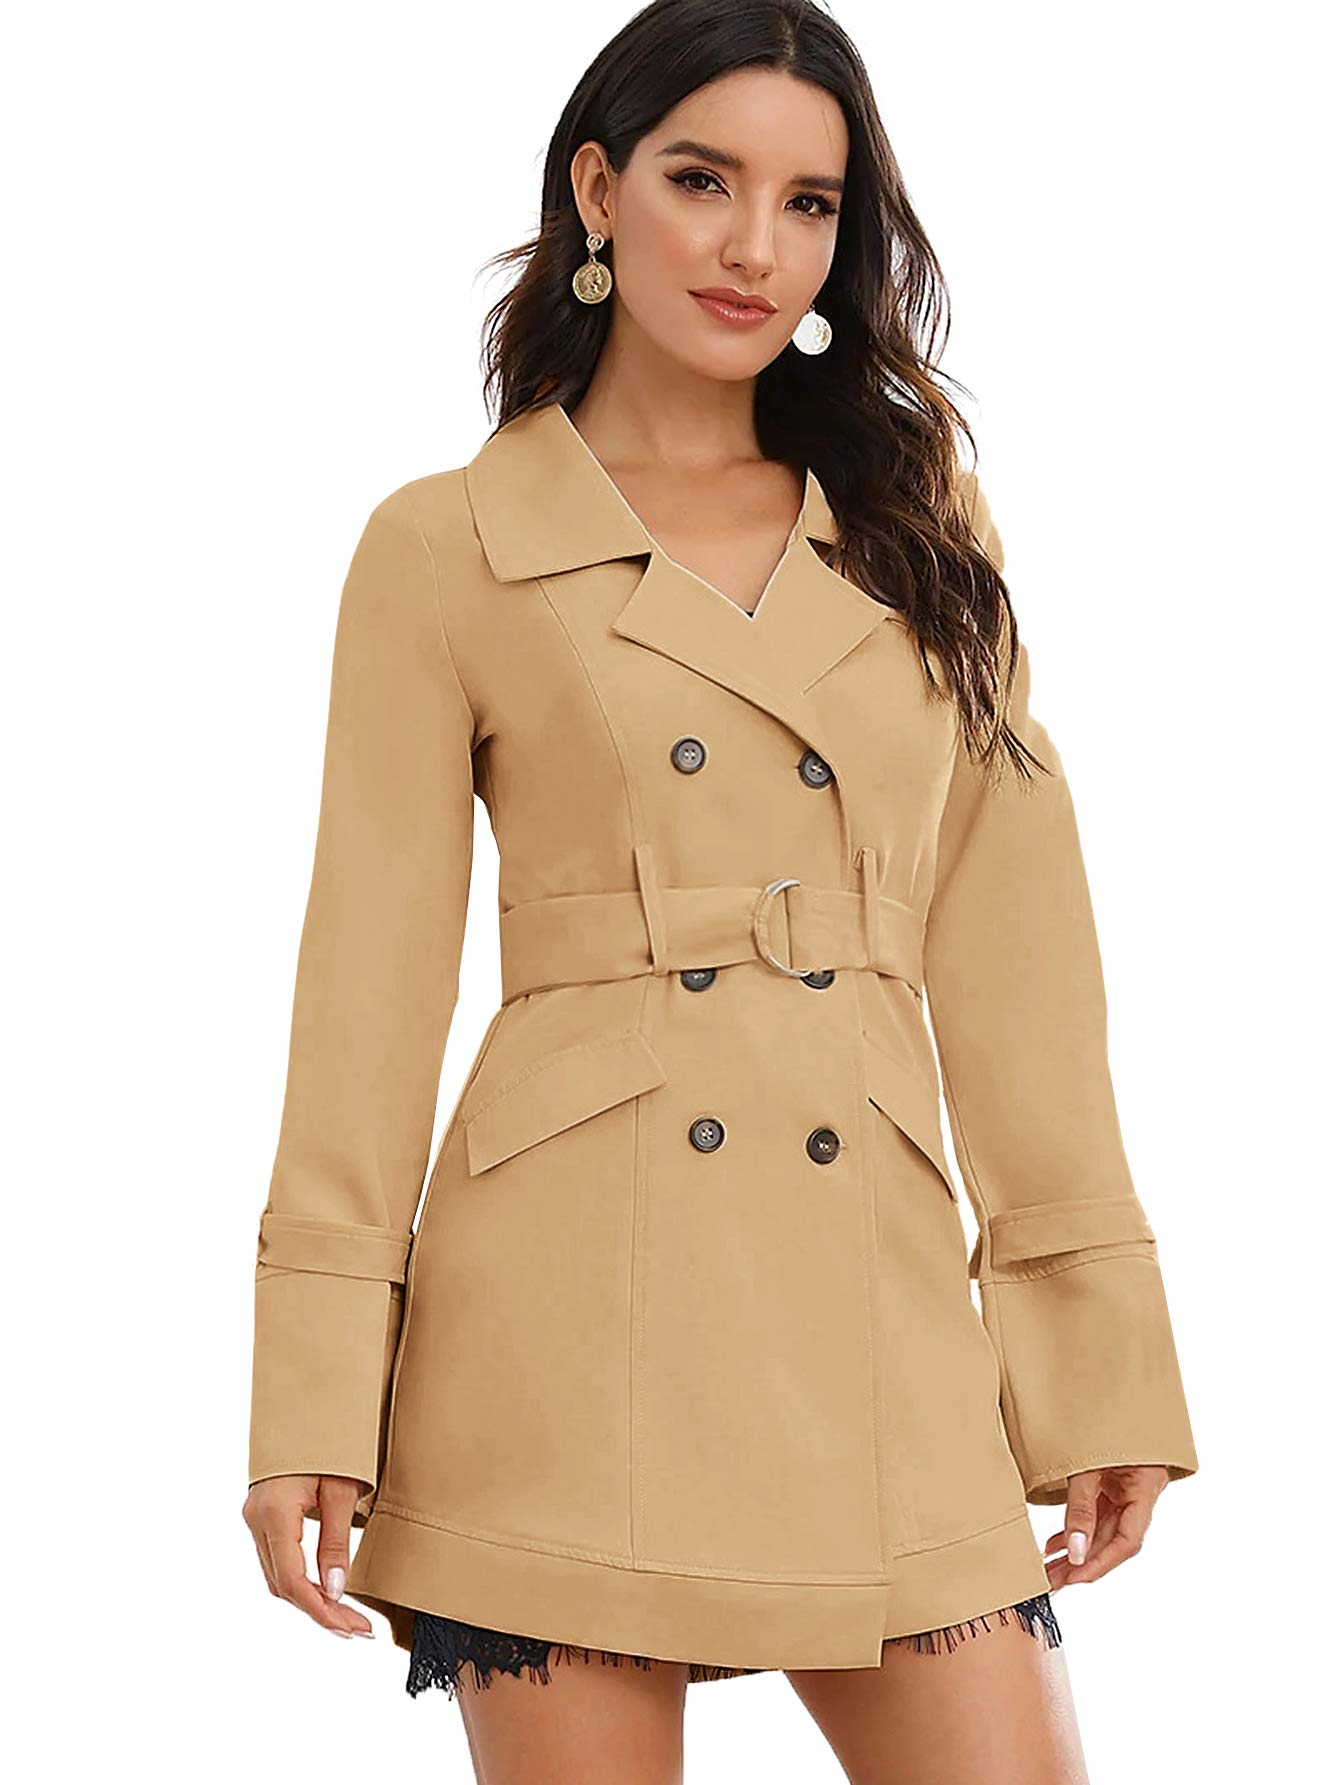 Milumia Women's Elegant Belted Long Sleeve Jacket Double Breasted Trench Coat Outwear